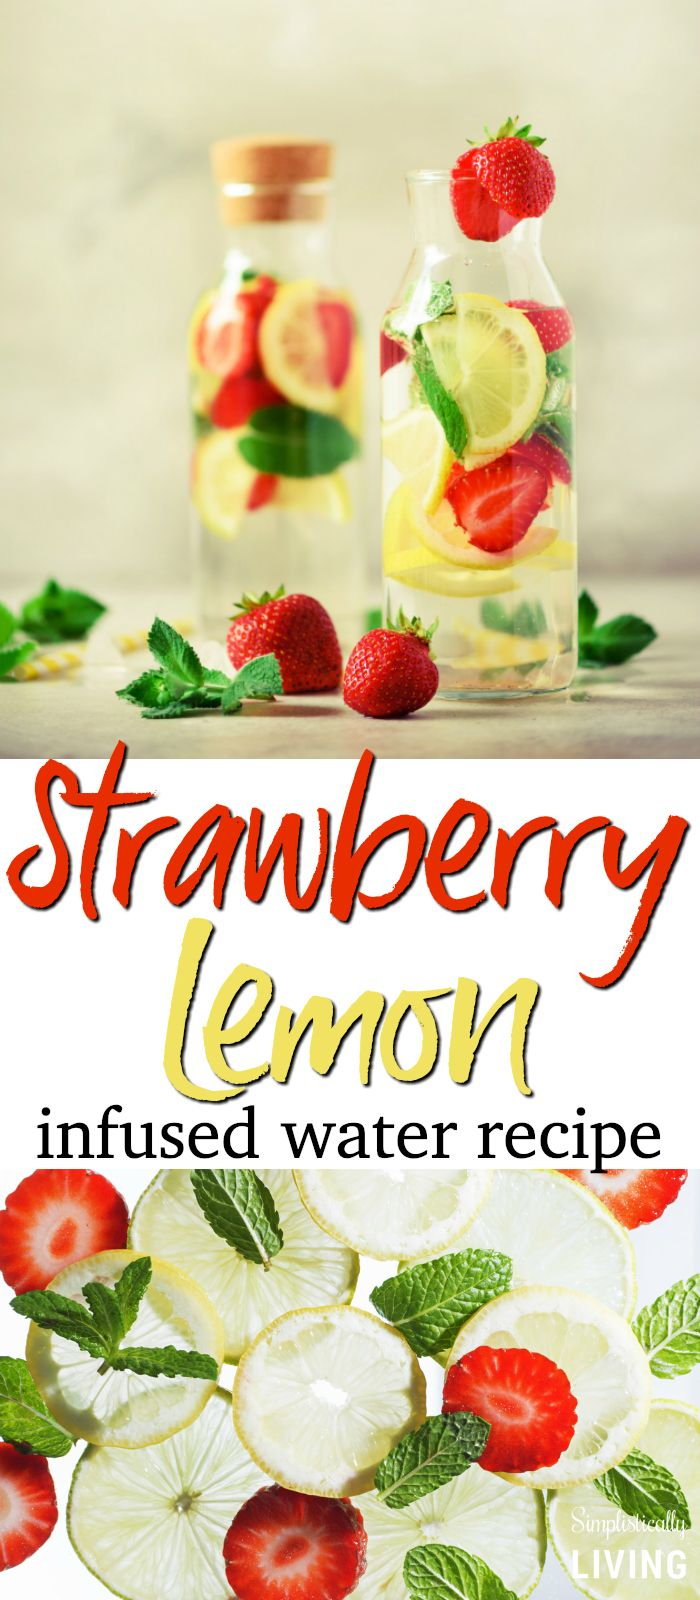 Strawberry Lemon Infused Water Recipe | A Detox Water Recipe